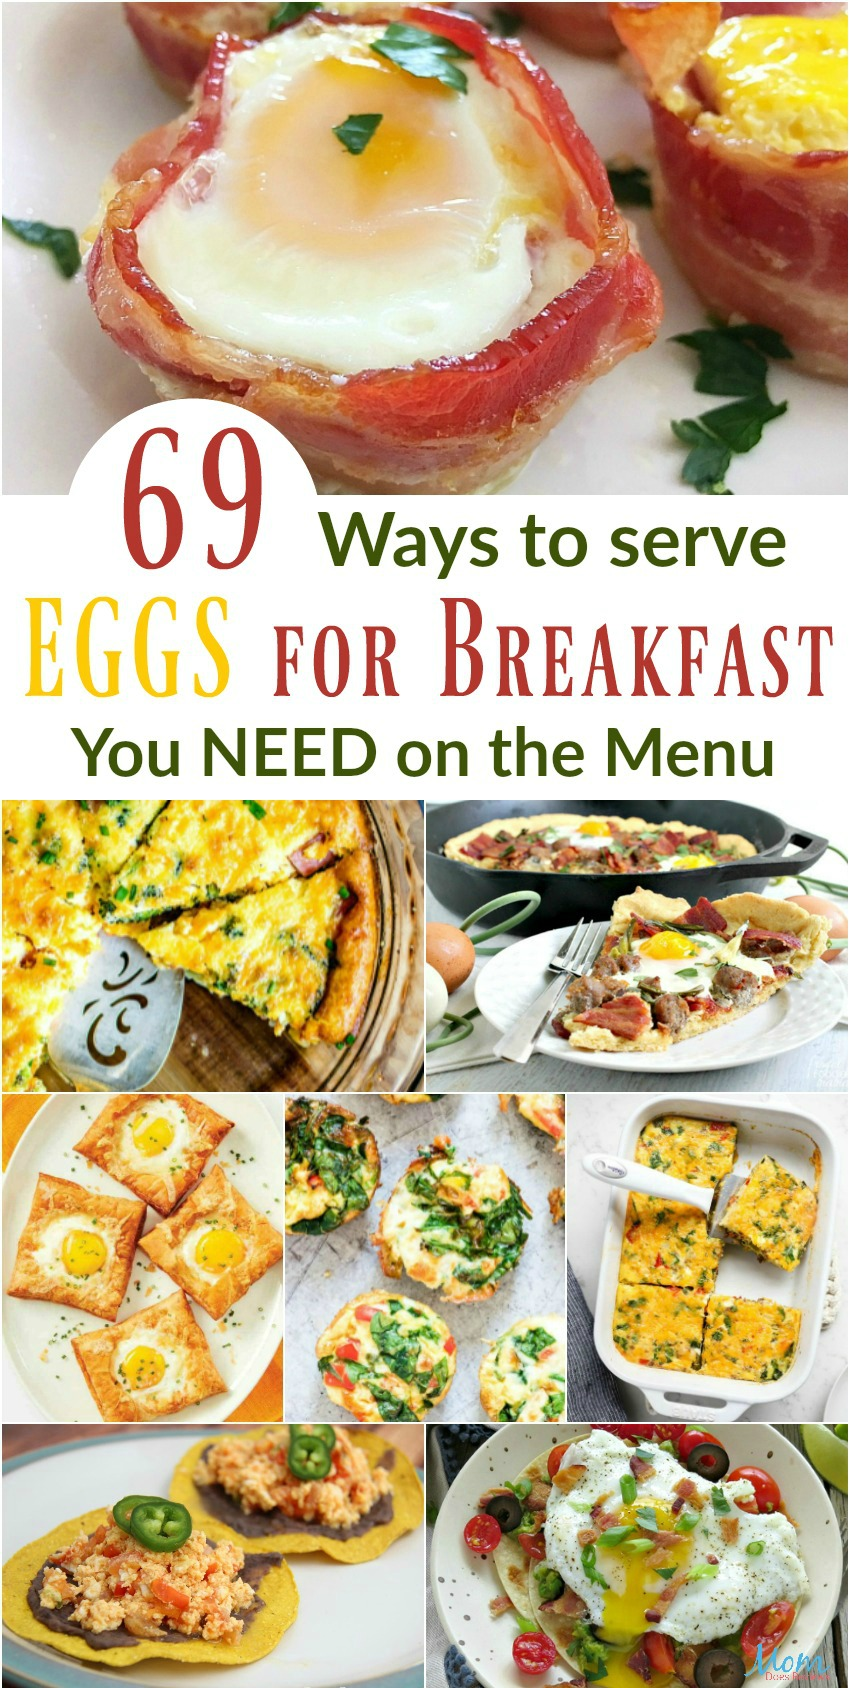 69 Ways to Serve Eggs for Breakfast You Need on the Menu